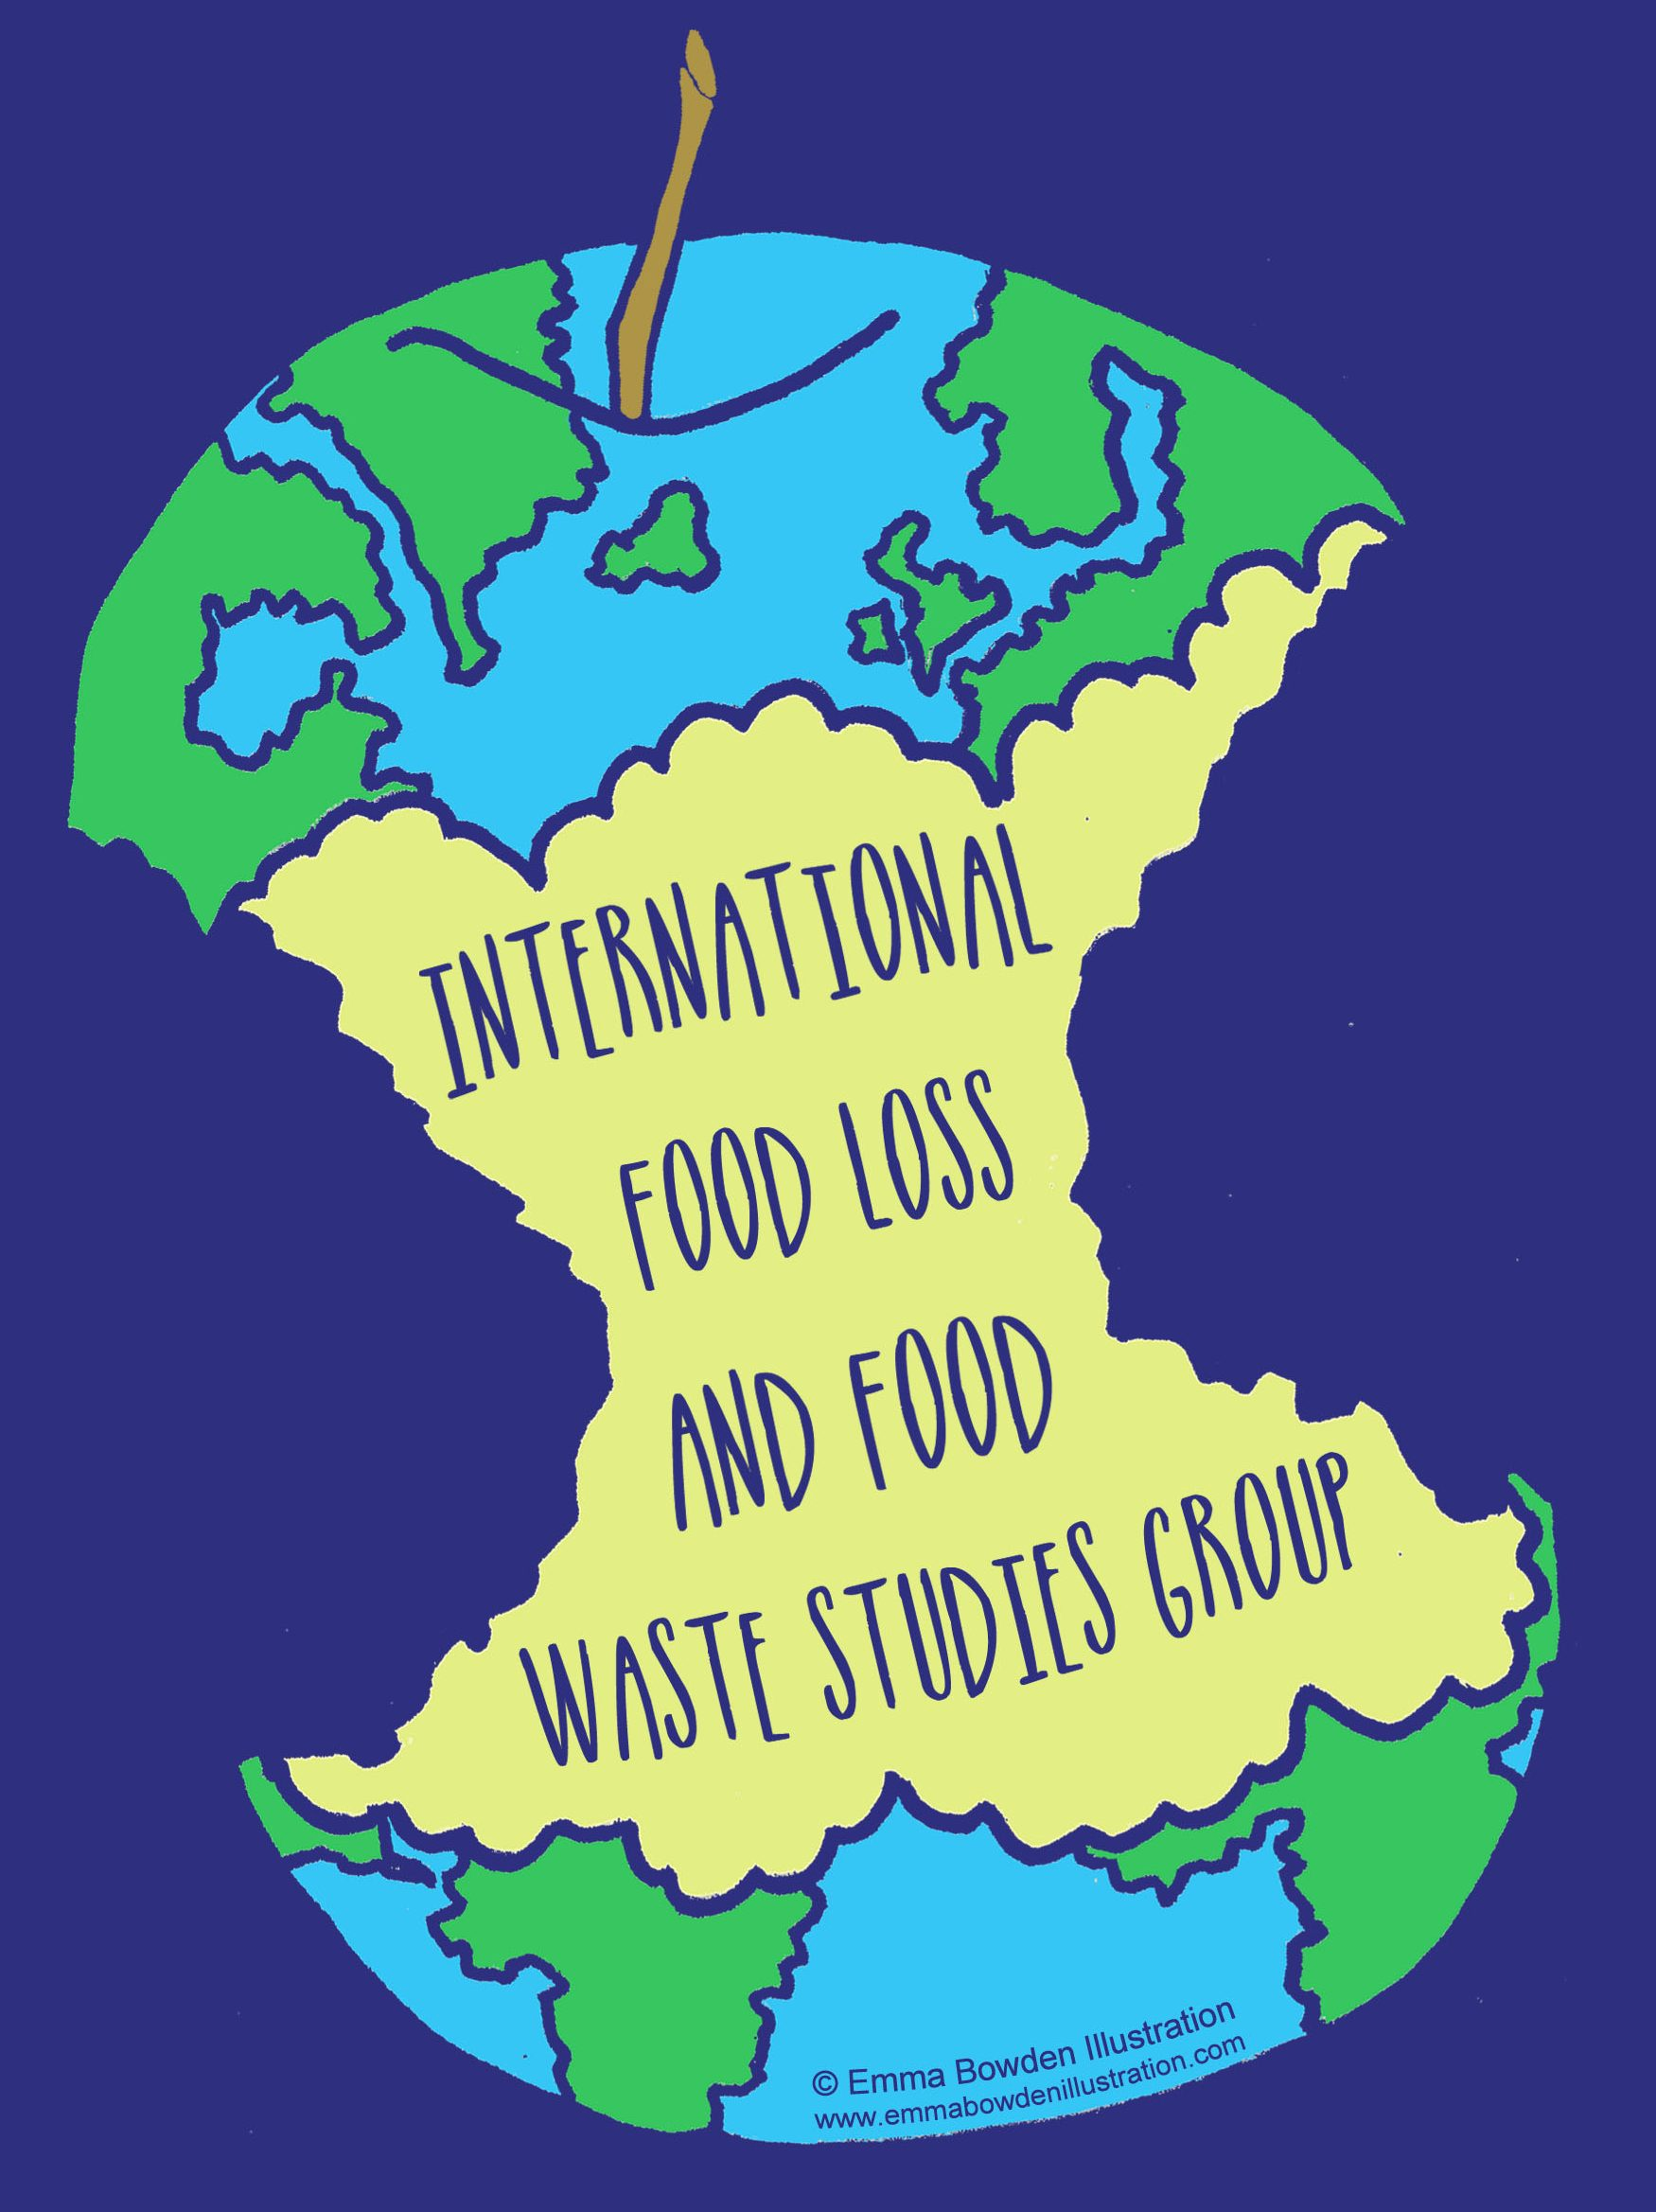 foodwastestudies.com